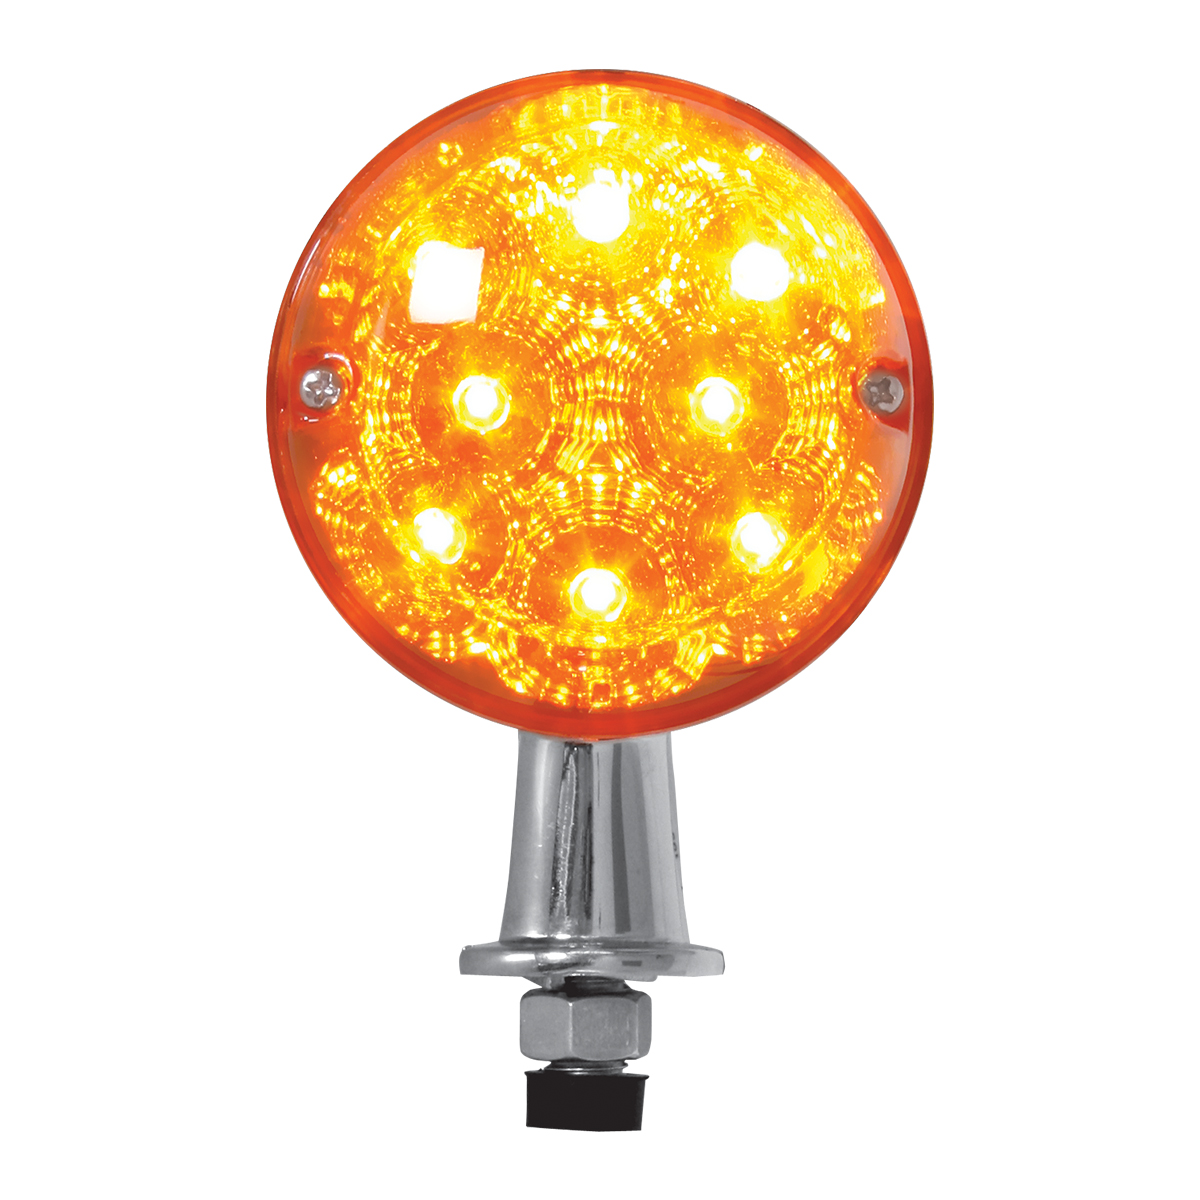 77800 Single Face Honda Spyder LED Pedestal Light in Amber/Amber